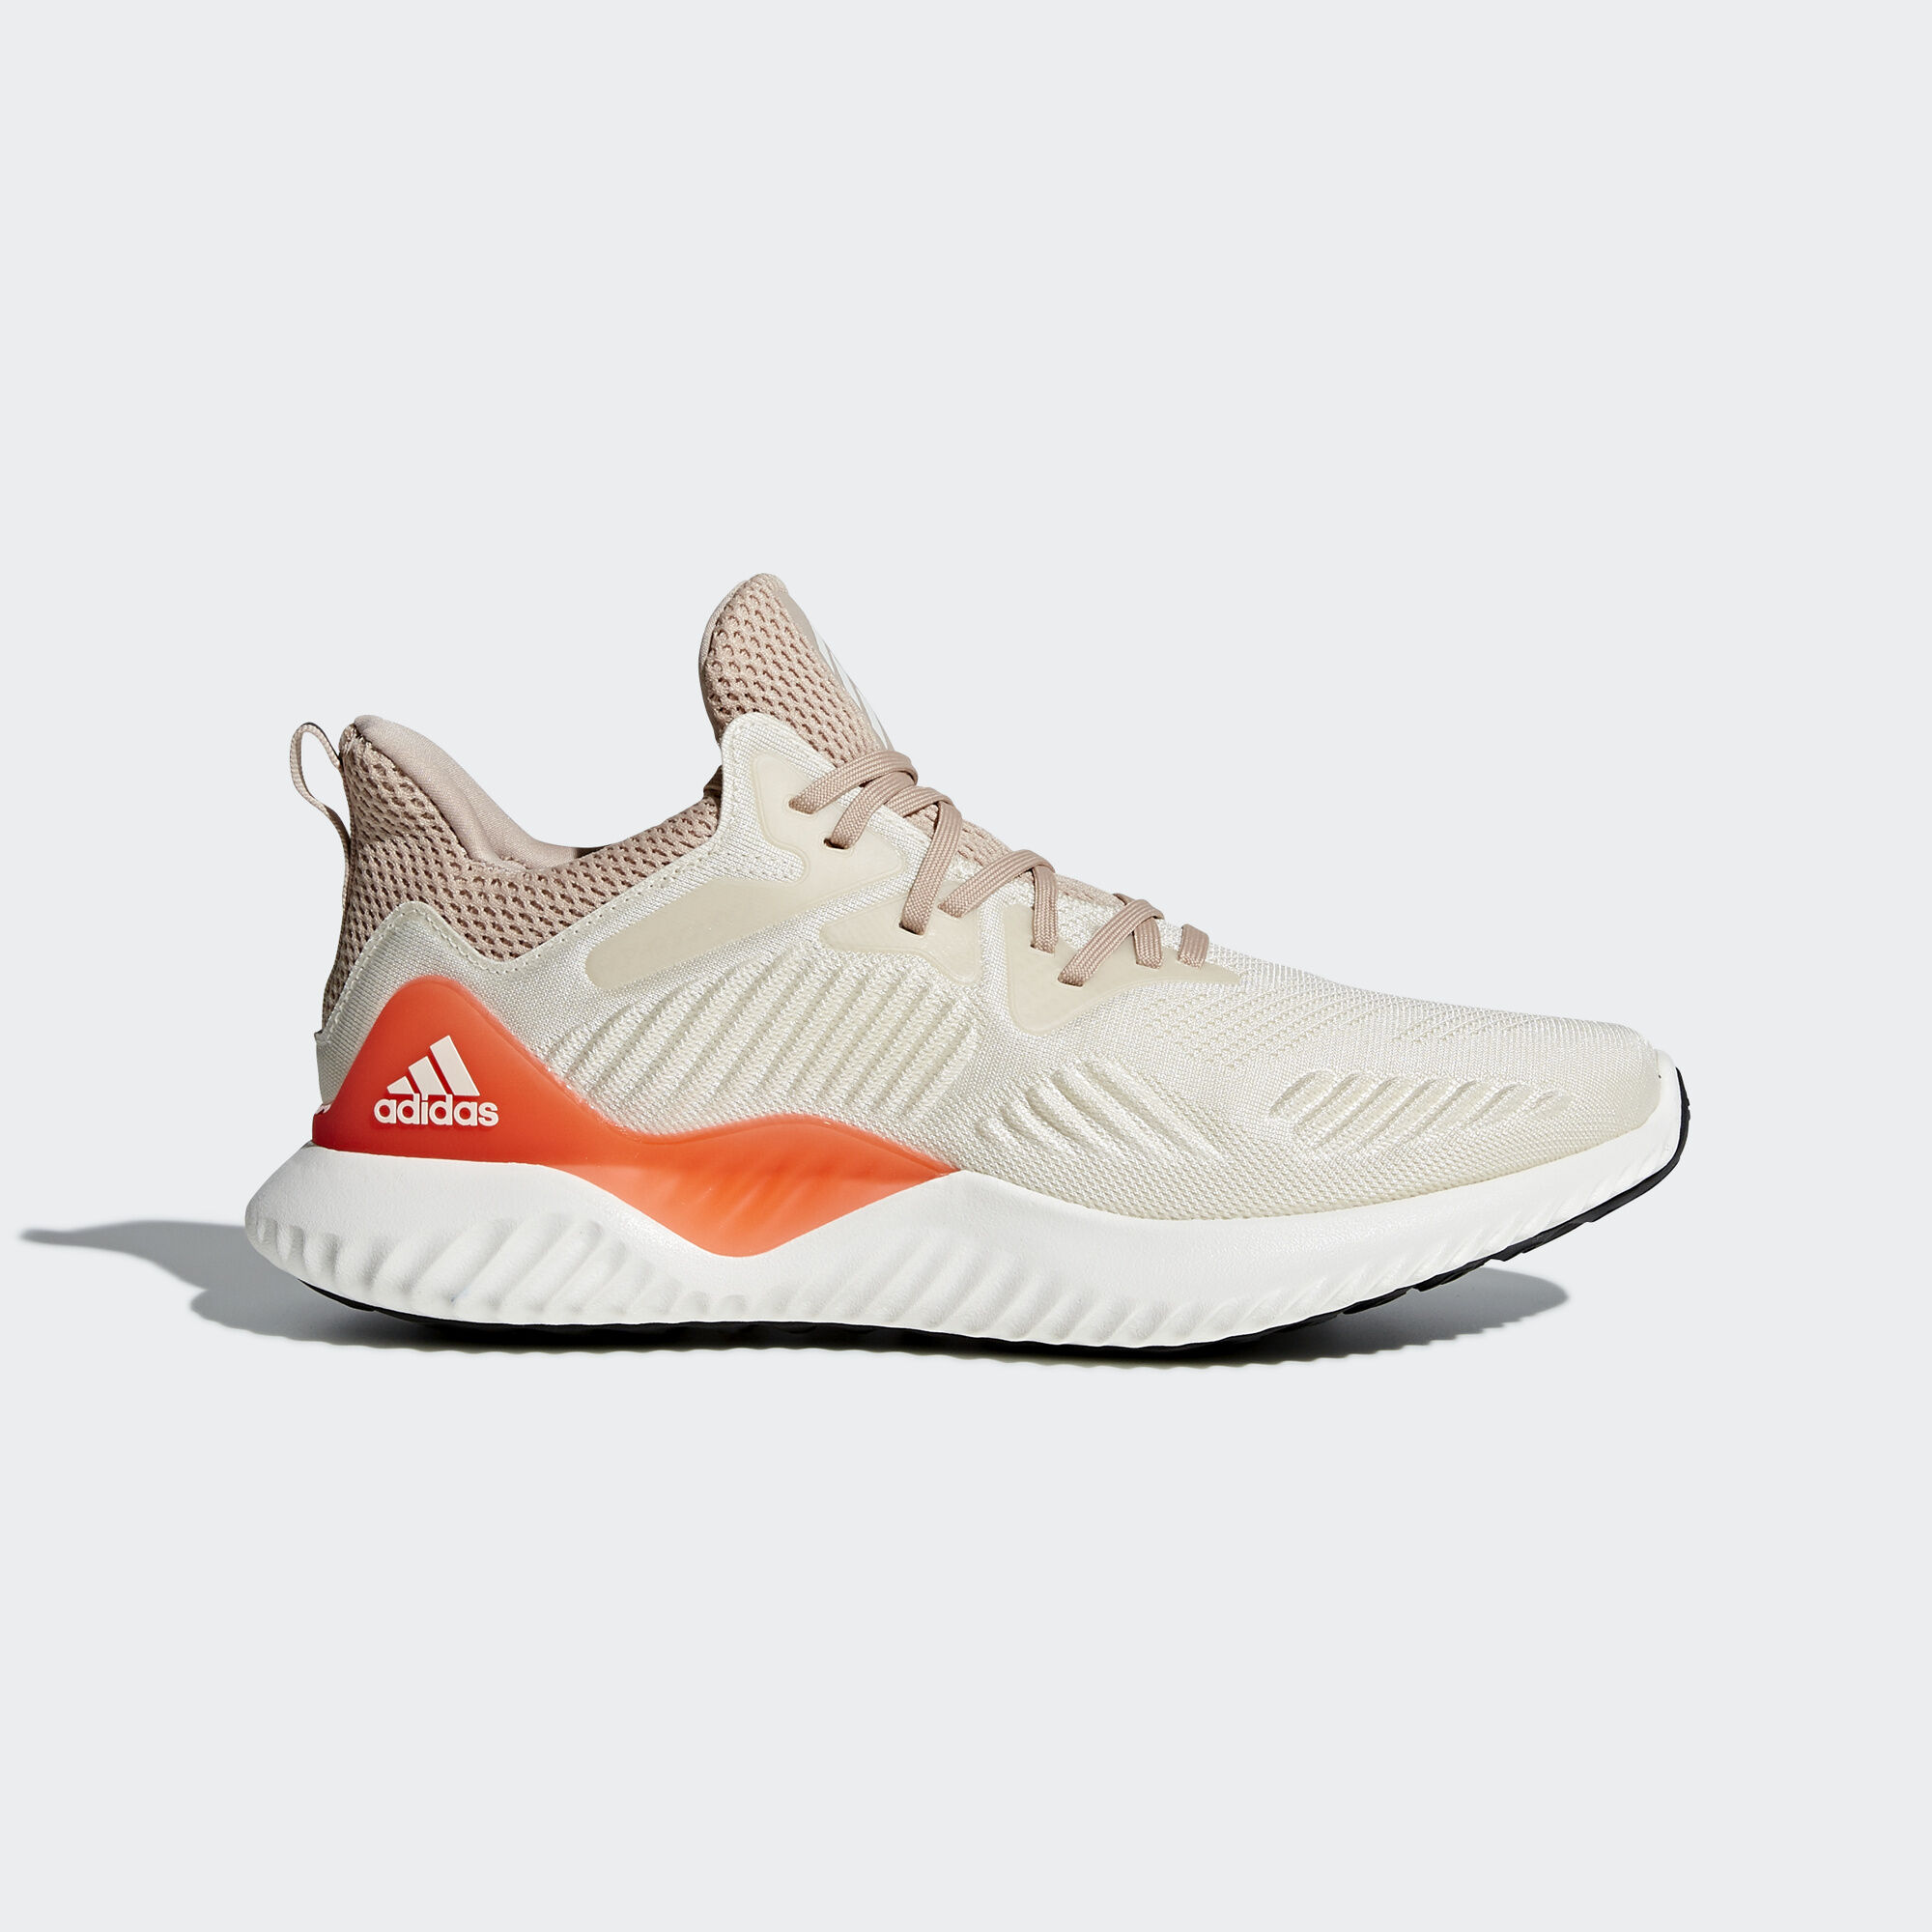 Adidas CG4763 Men Alphabounce Beyond Running shoes Great beige orange sneakers Lowest price